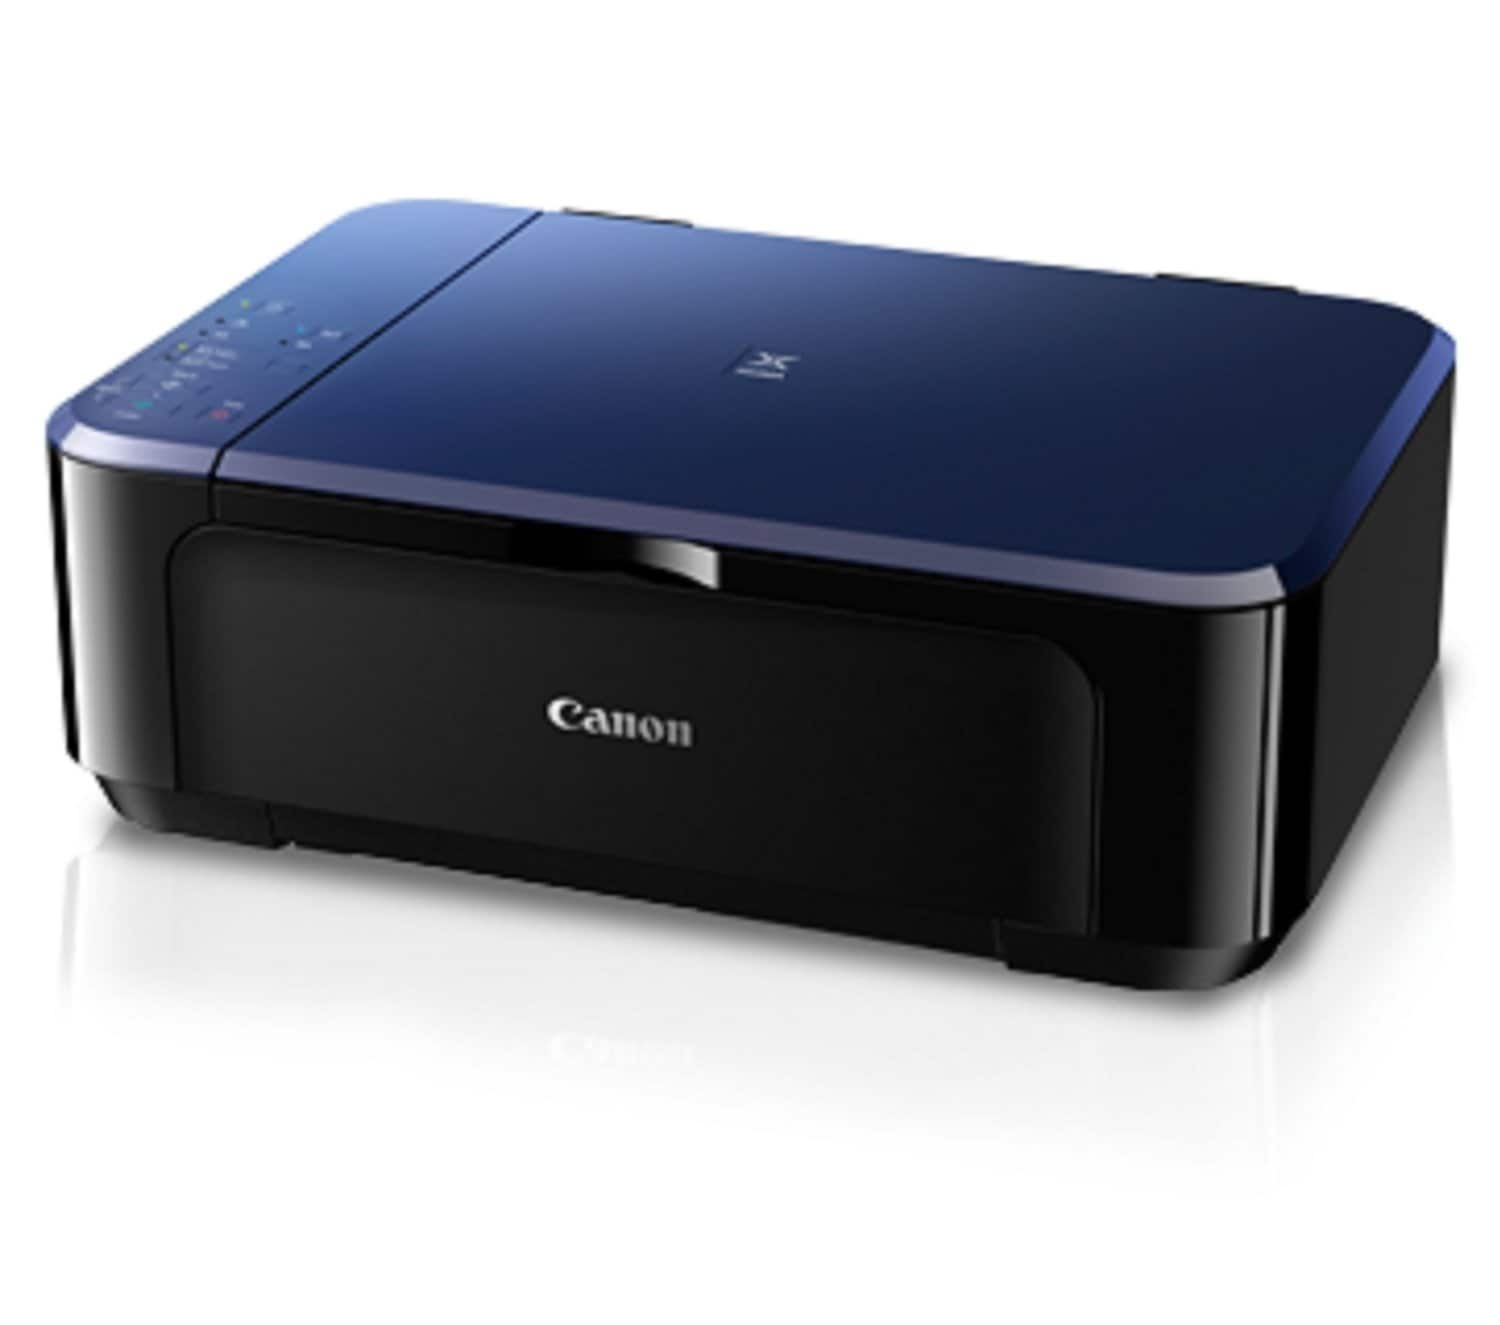 Canon E560 Multi Function Inkjet All In One Printer